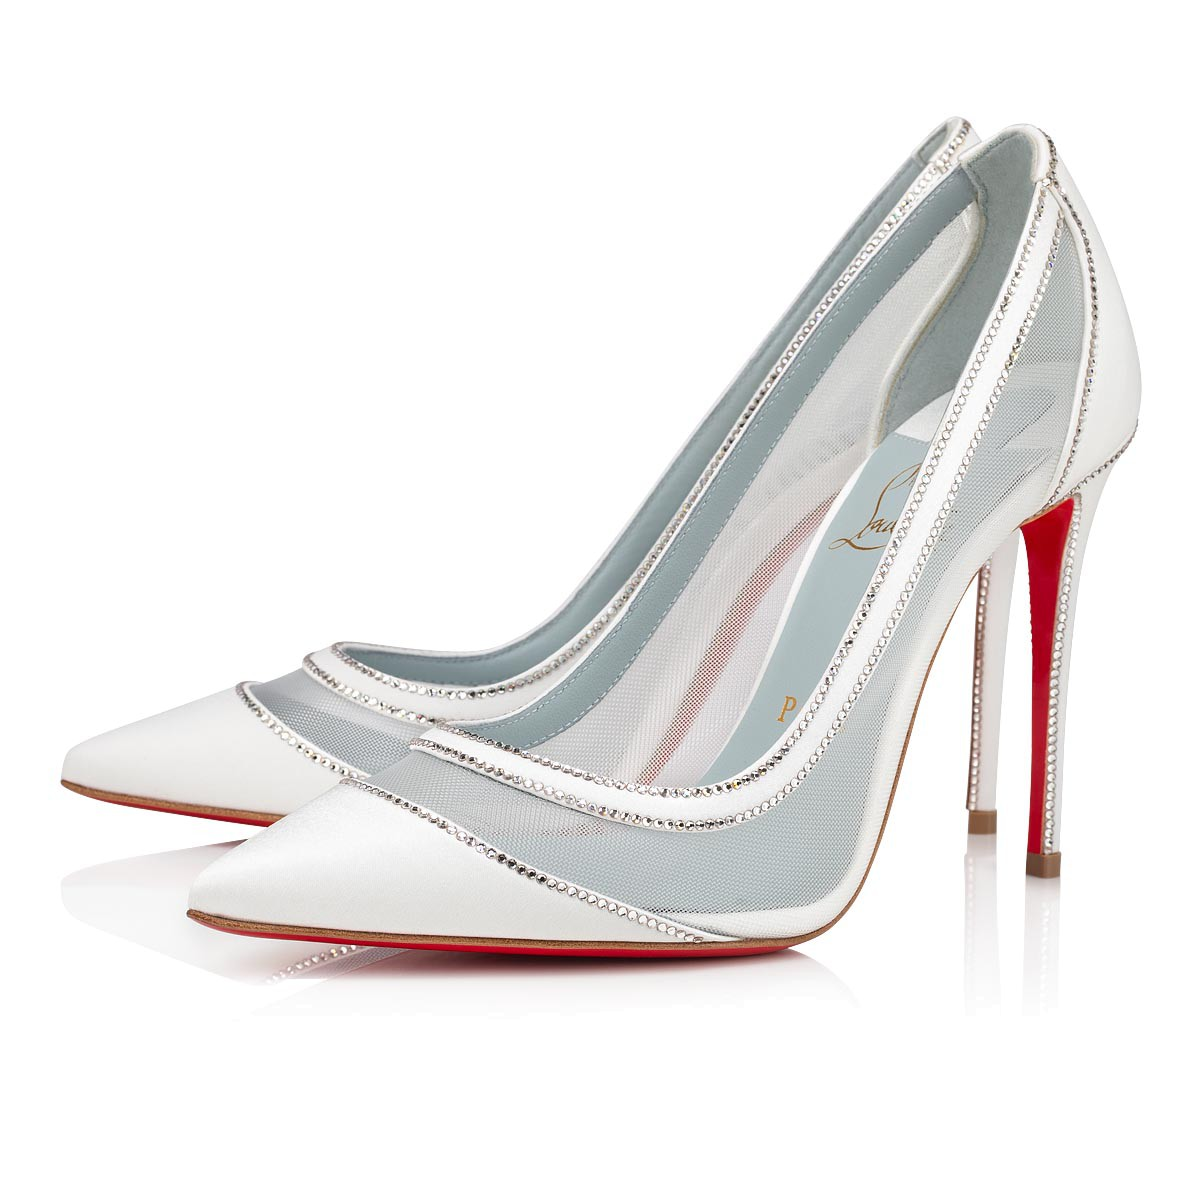 Shoes - Galativi Strass - Christian Louboutin